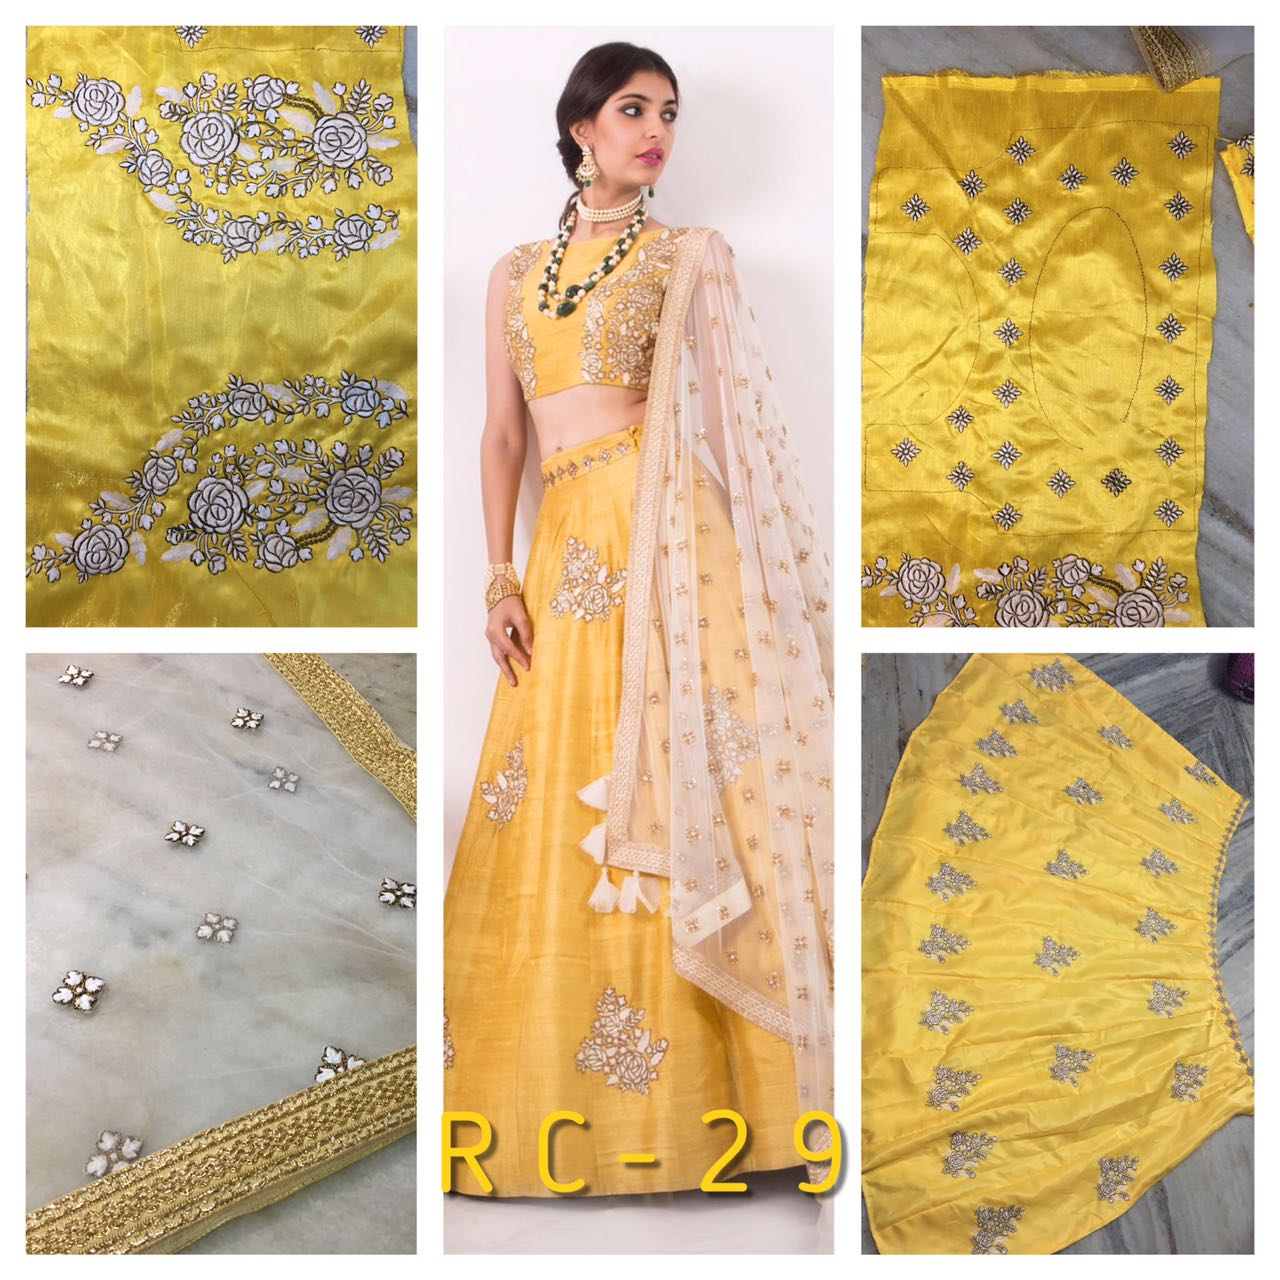 RC 29 Bangalori Silk Lehenga Blouse Side